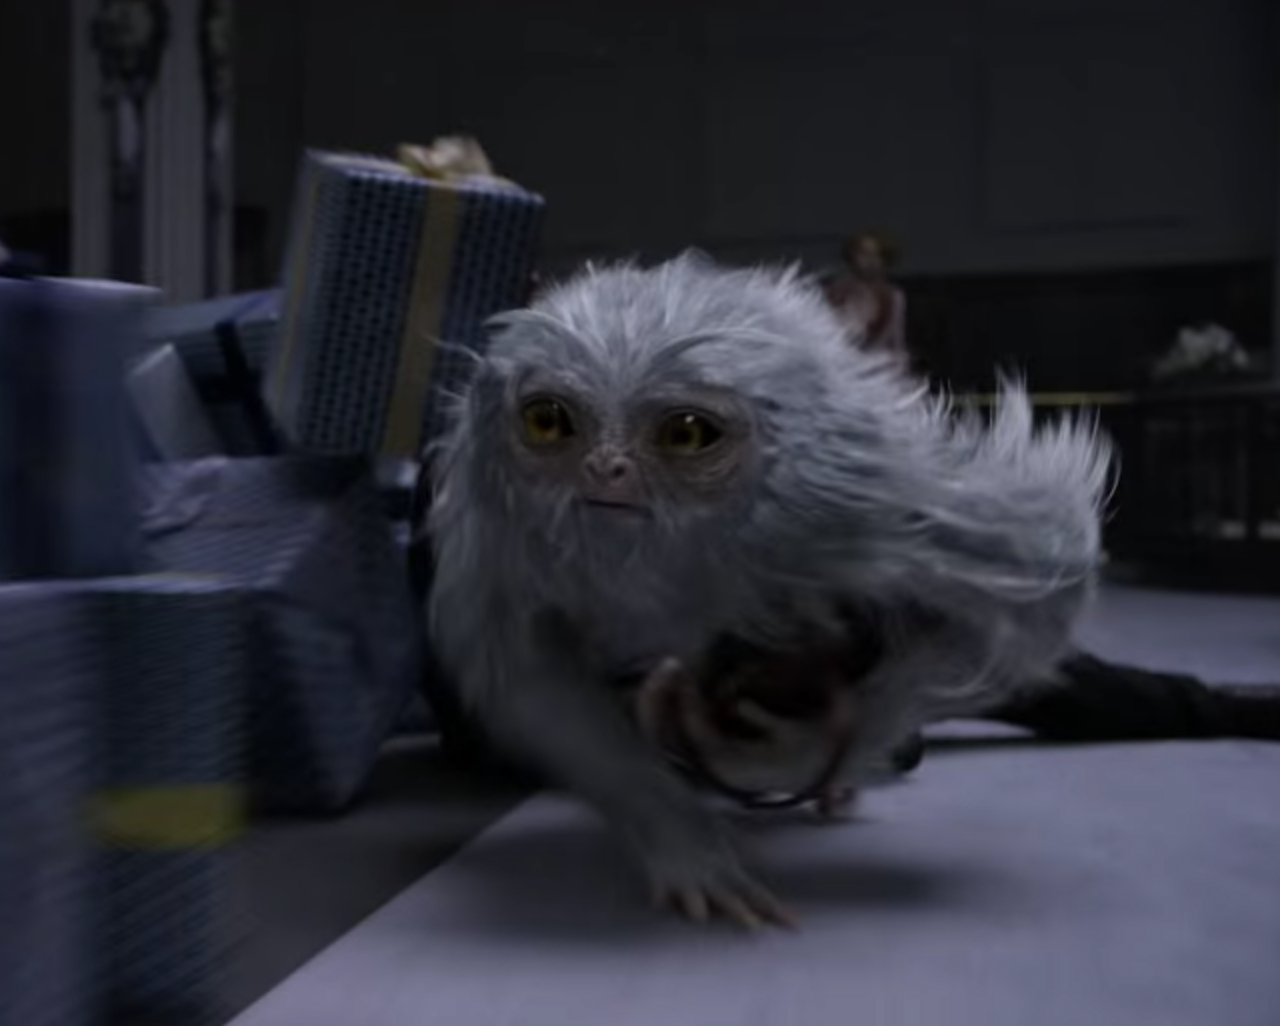 The Demiguise in 'Fantastic Beasts and Where to Find Them'